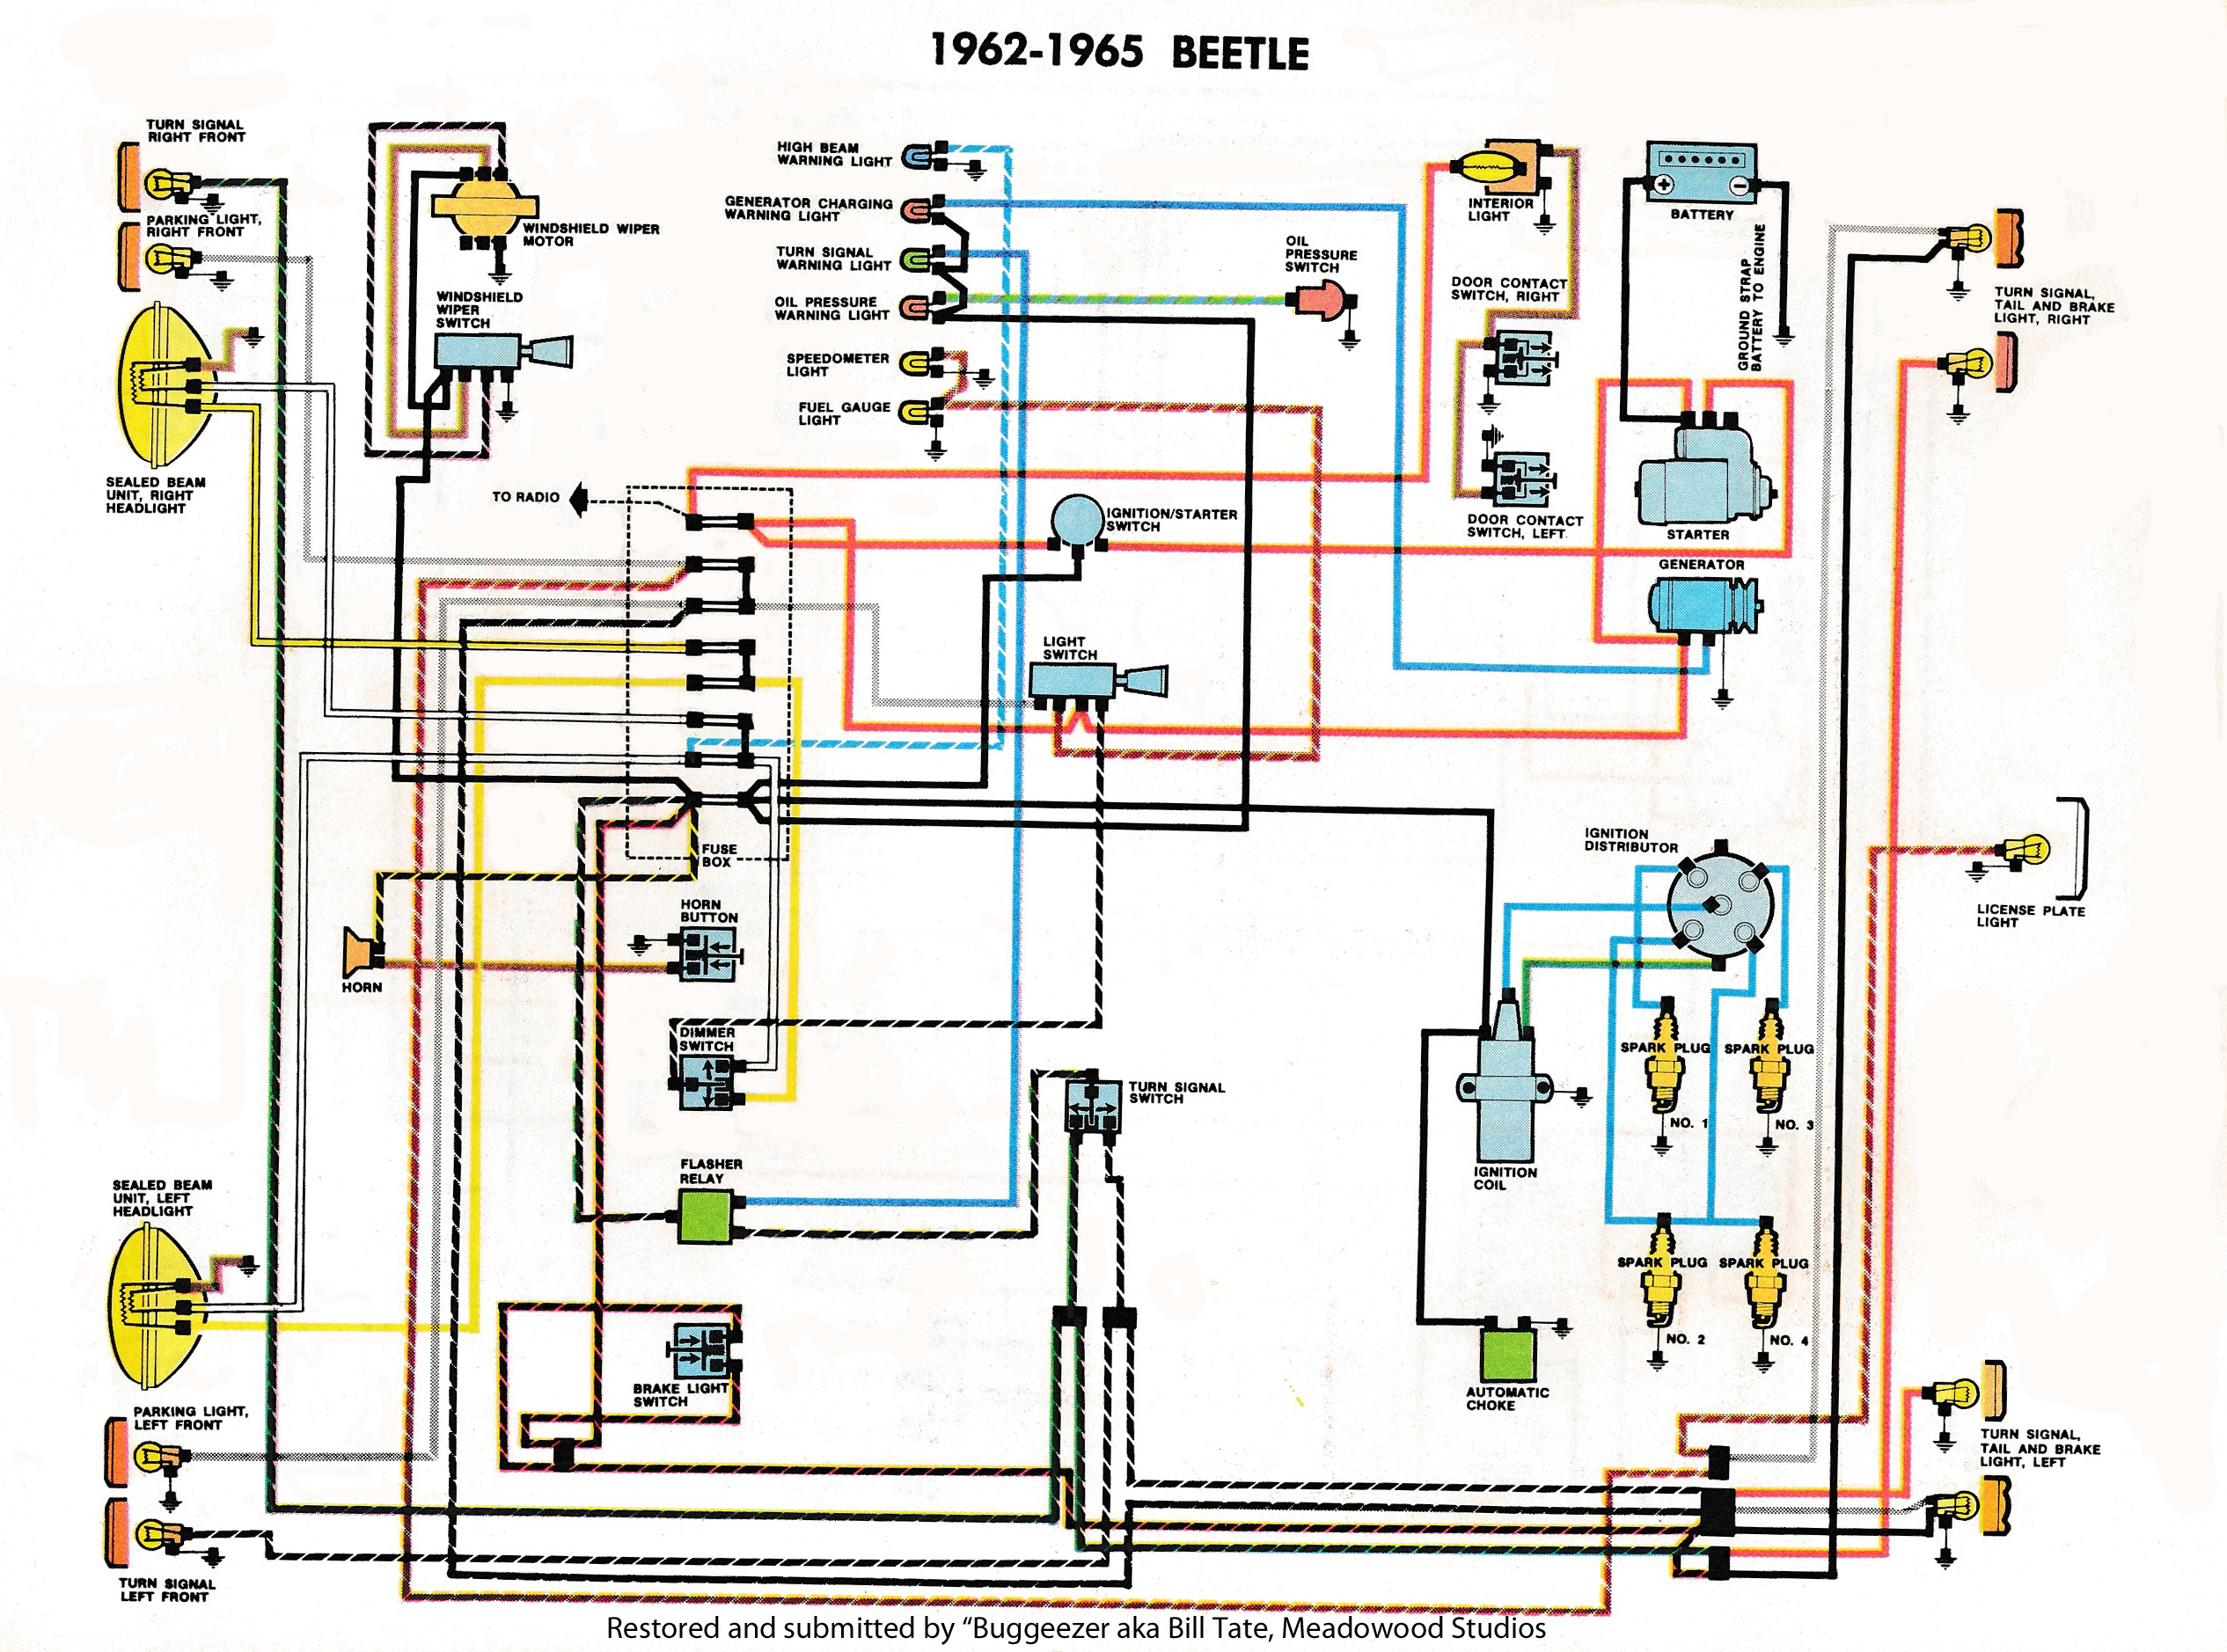 wiring diagram for 1970 vw bug wiring diagram schematicsthesamba com type 1 wiring diagrams 1973 vw beetle wiring diagram wiring diagram for 1970 vw bug